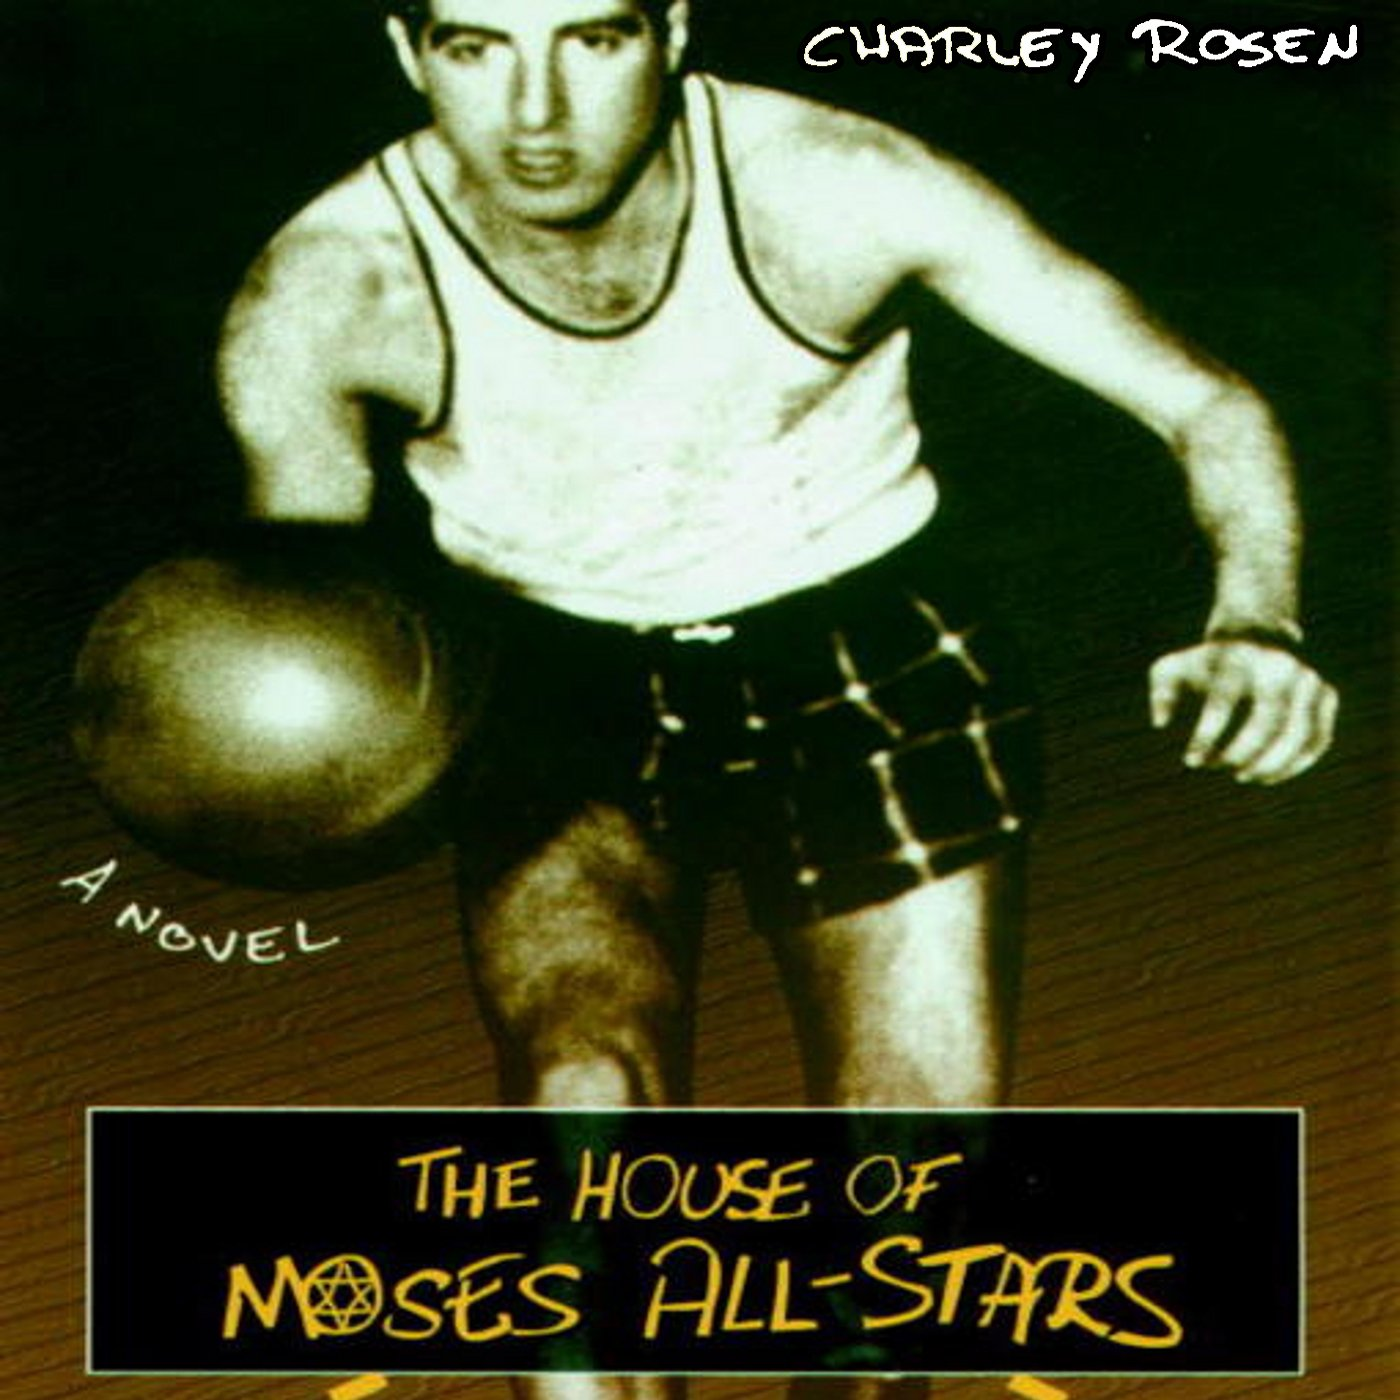 The House of Moses All-Stars